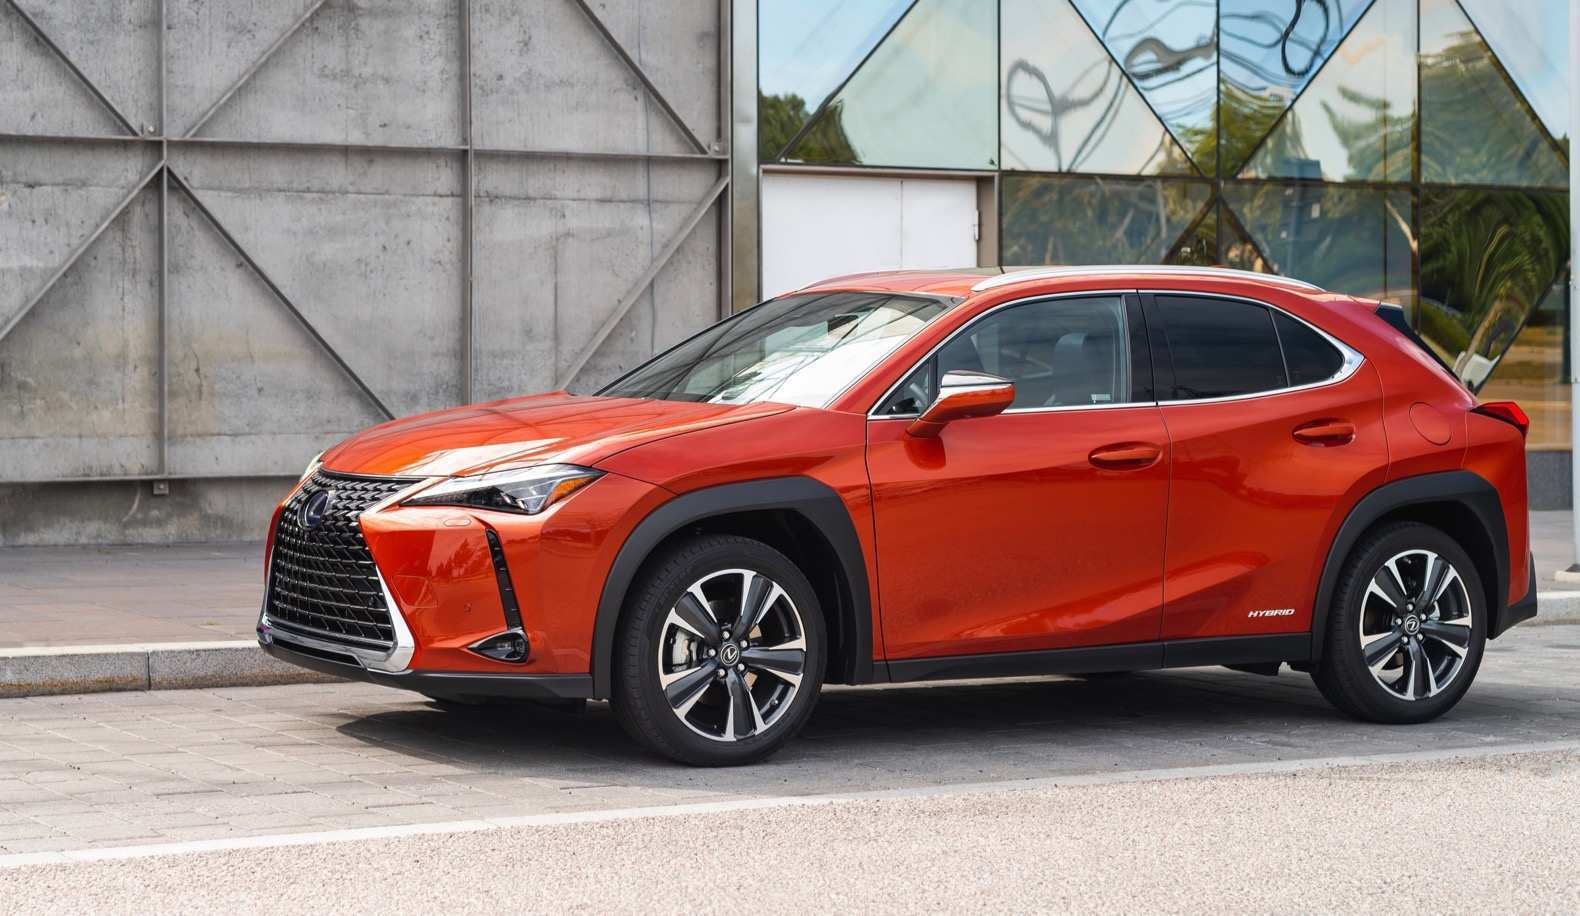 93 All New Lexus Electric 2020 Price